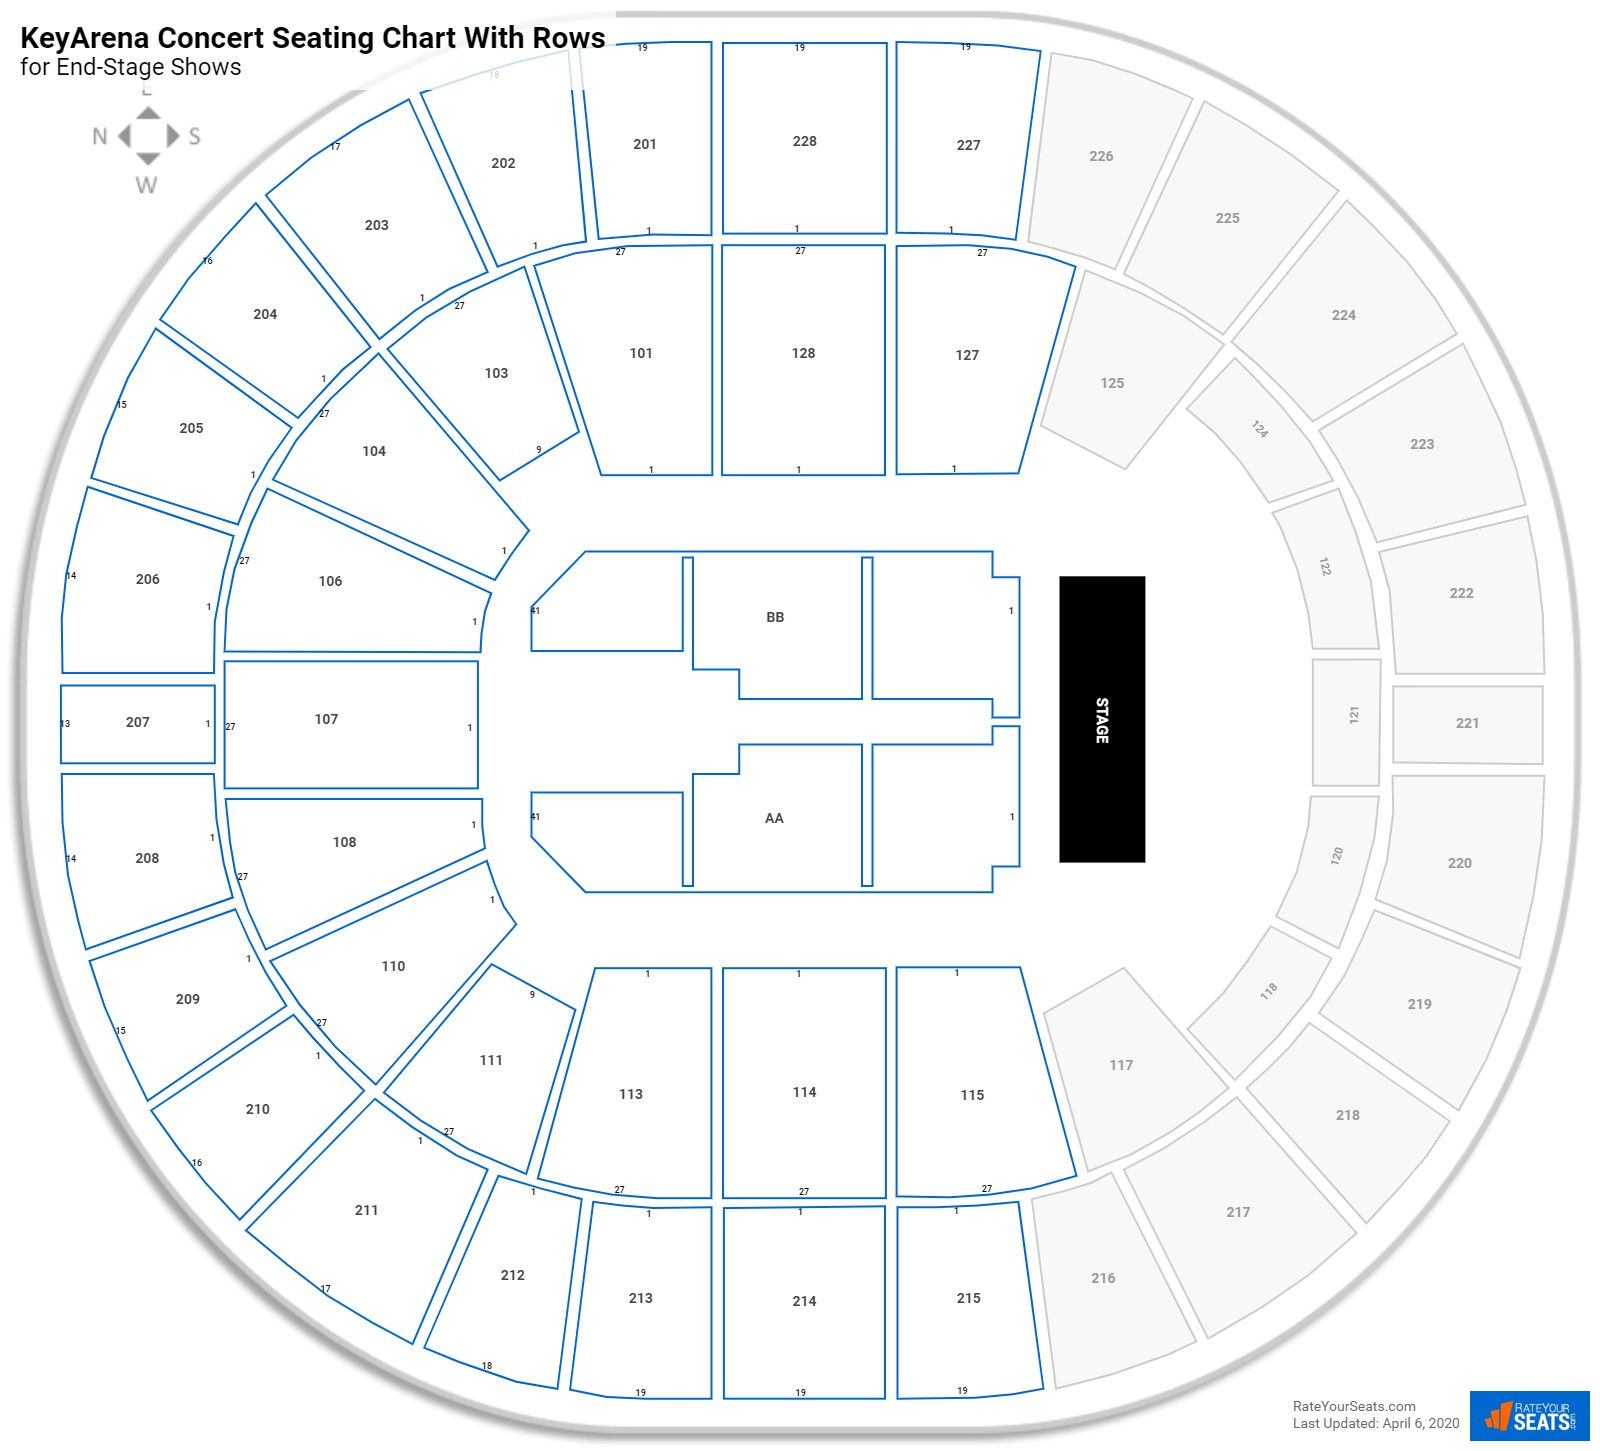 KeyArena seating chart with rows concert